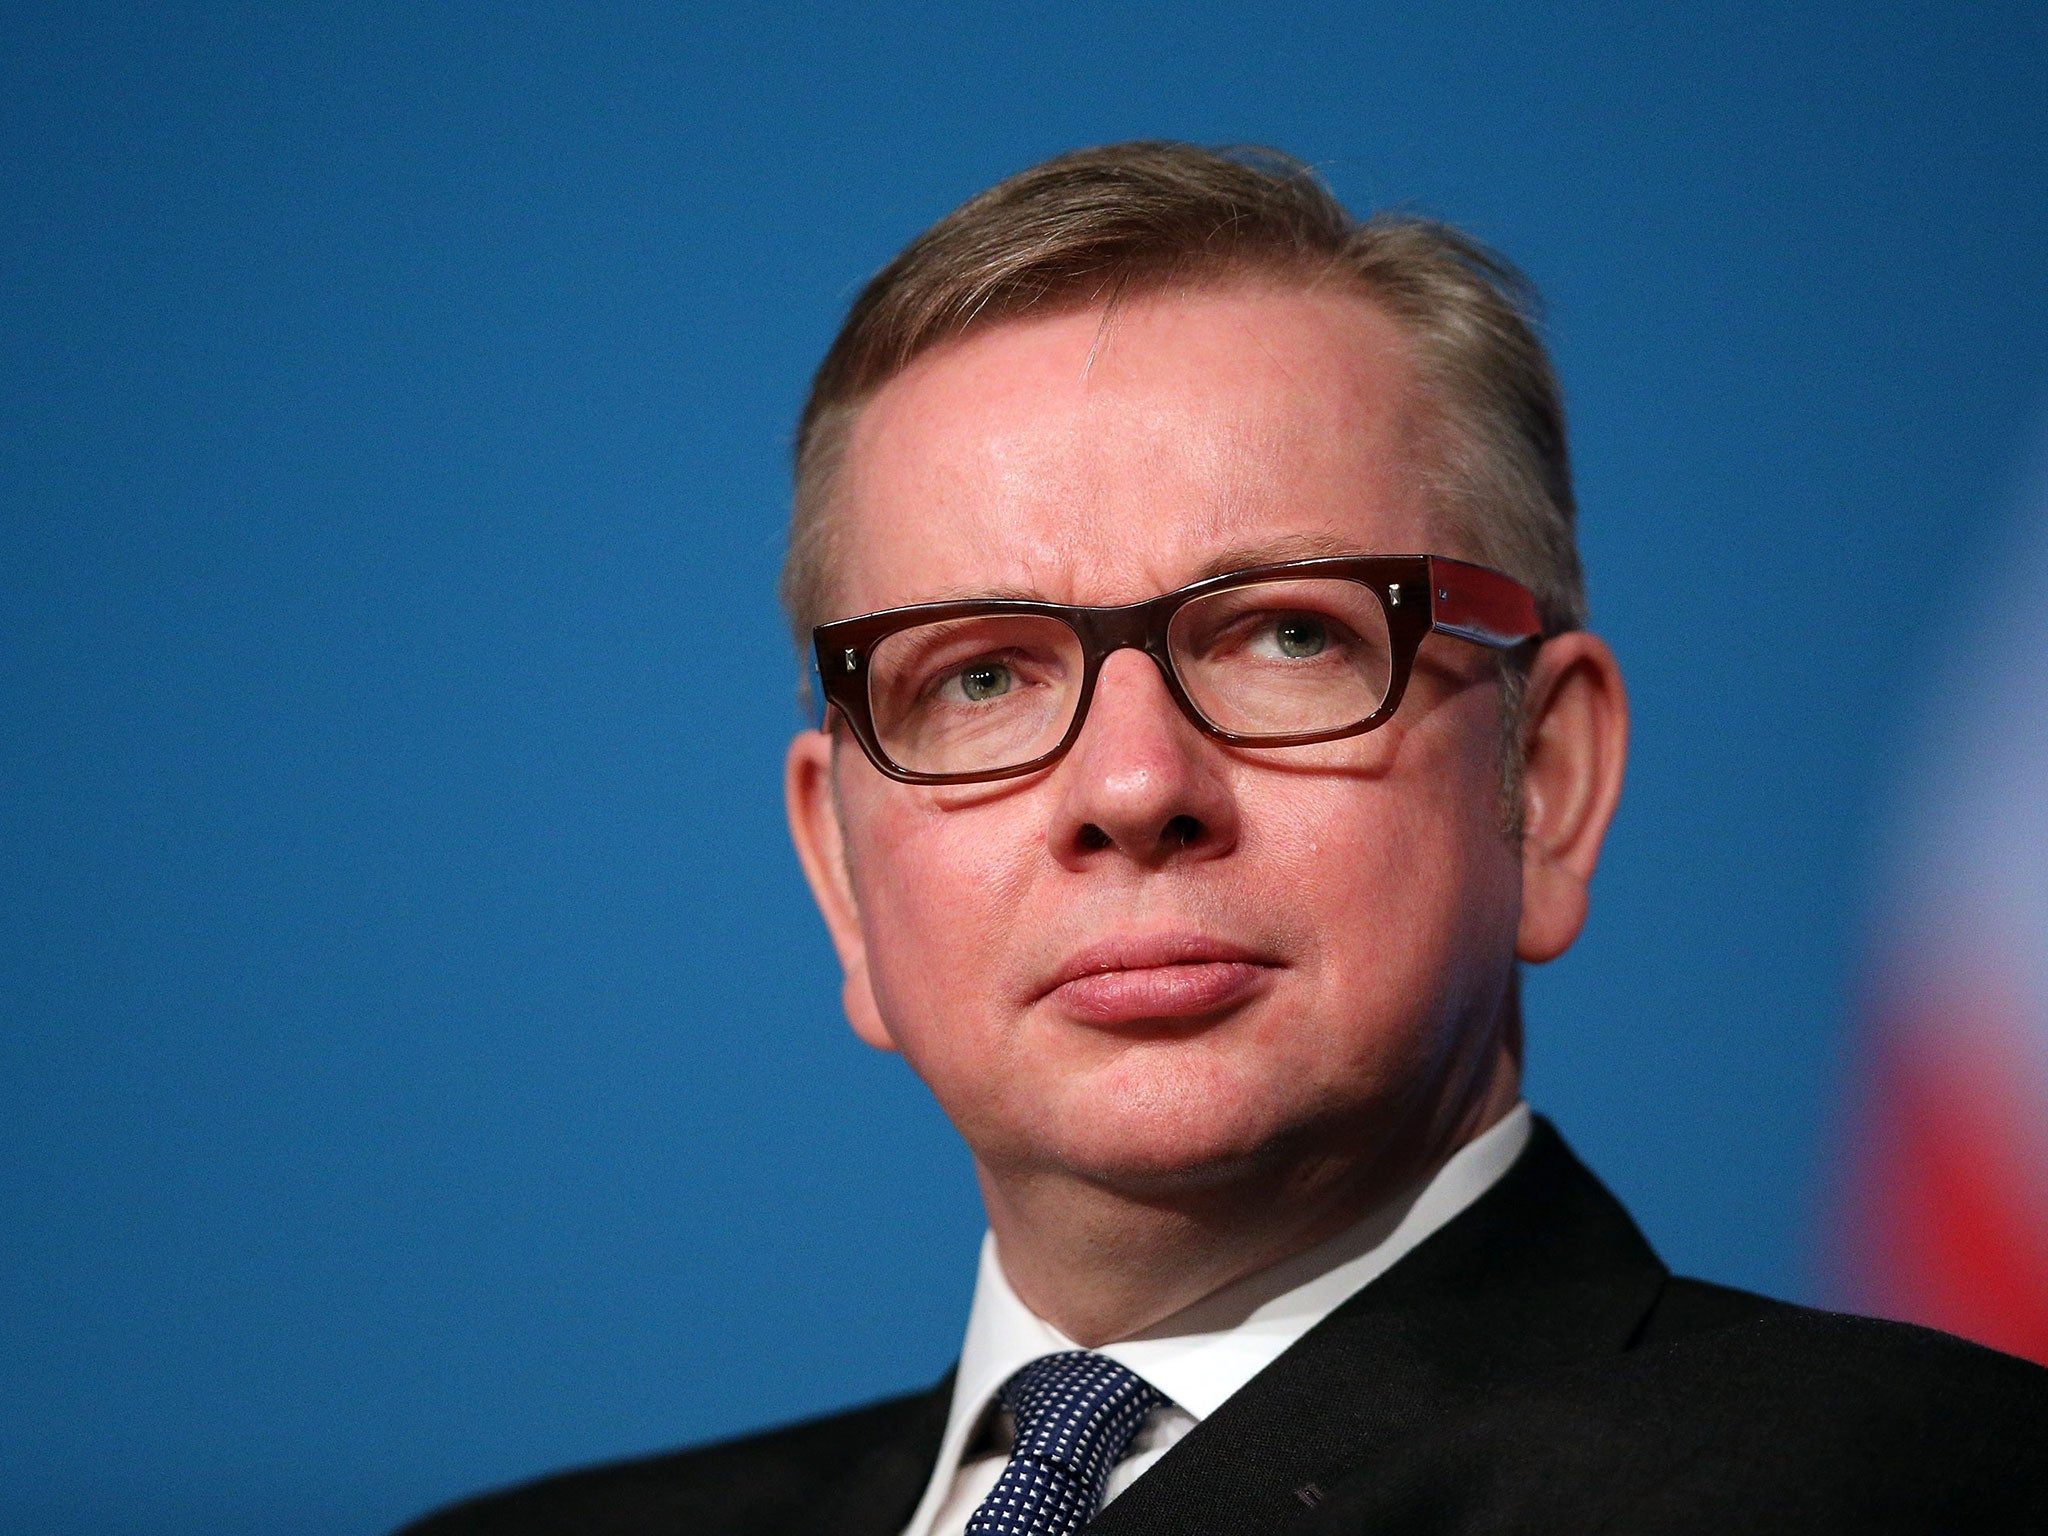 A-level results: Michael Gove should be pleased with today's